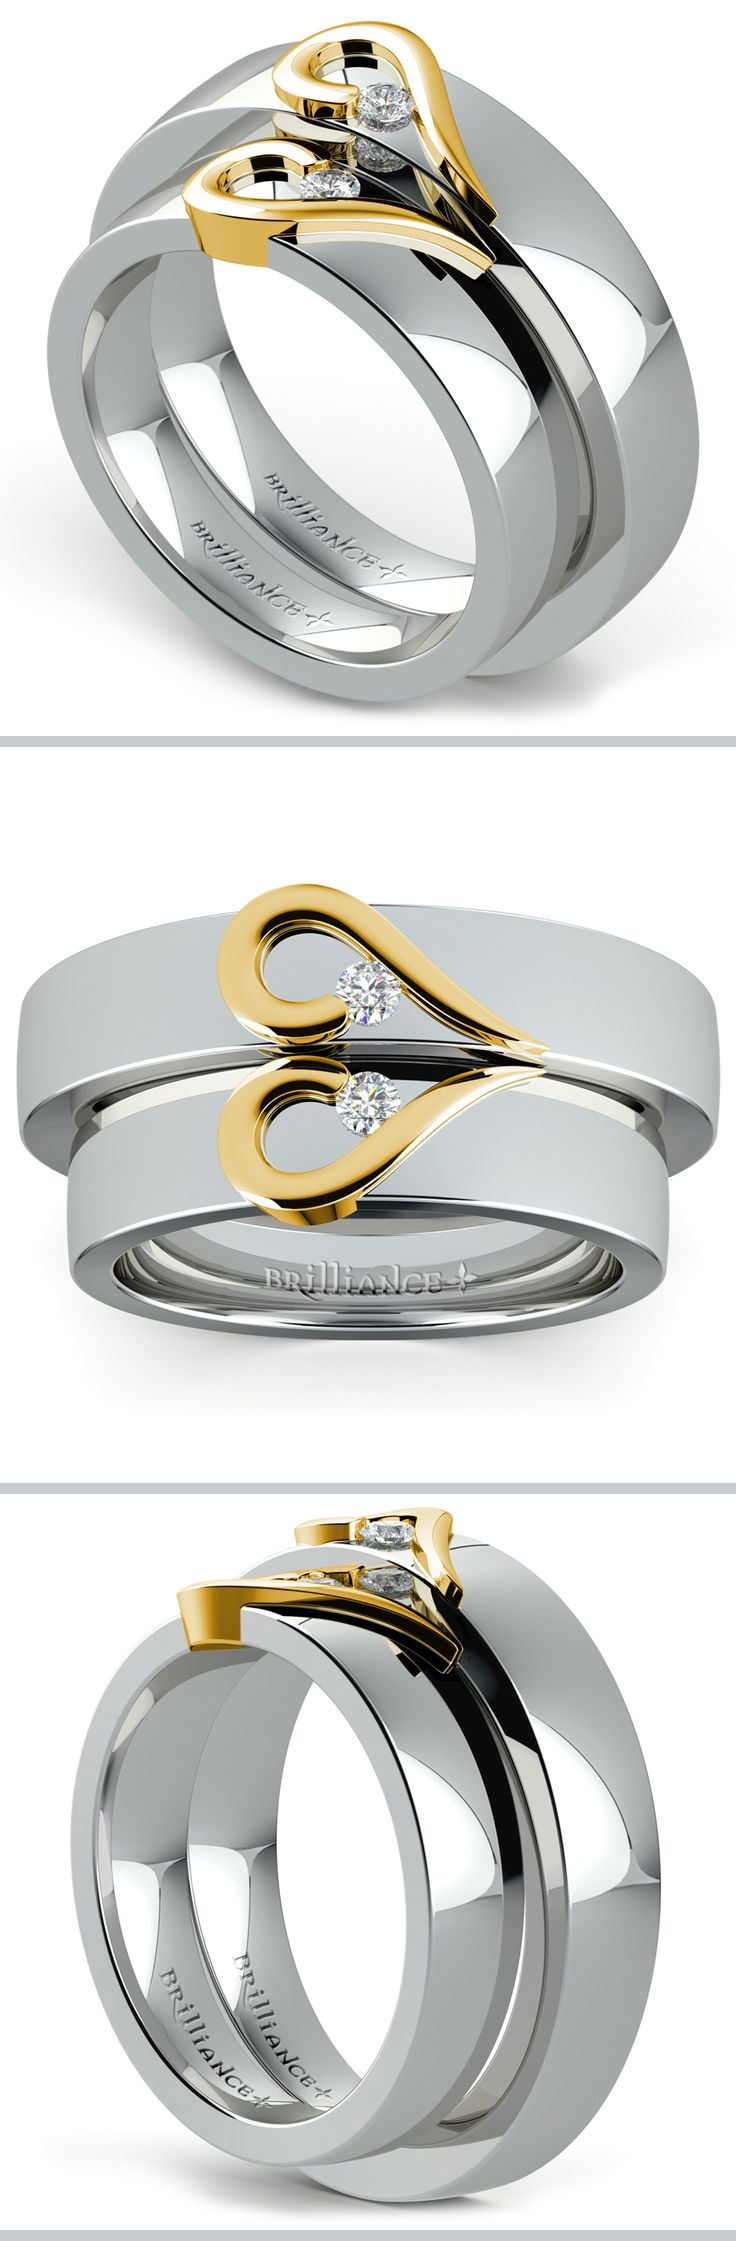 This wedding set features matching his and hers 3.5 mm bands in white gold, each with a curled half-heart design in 14k yellow gold and accented by a diamond for one-twelfth total weight.